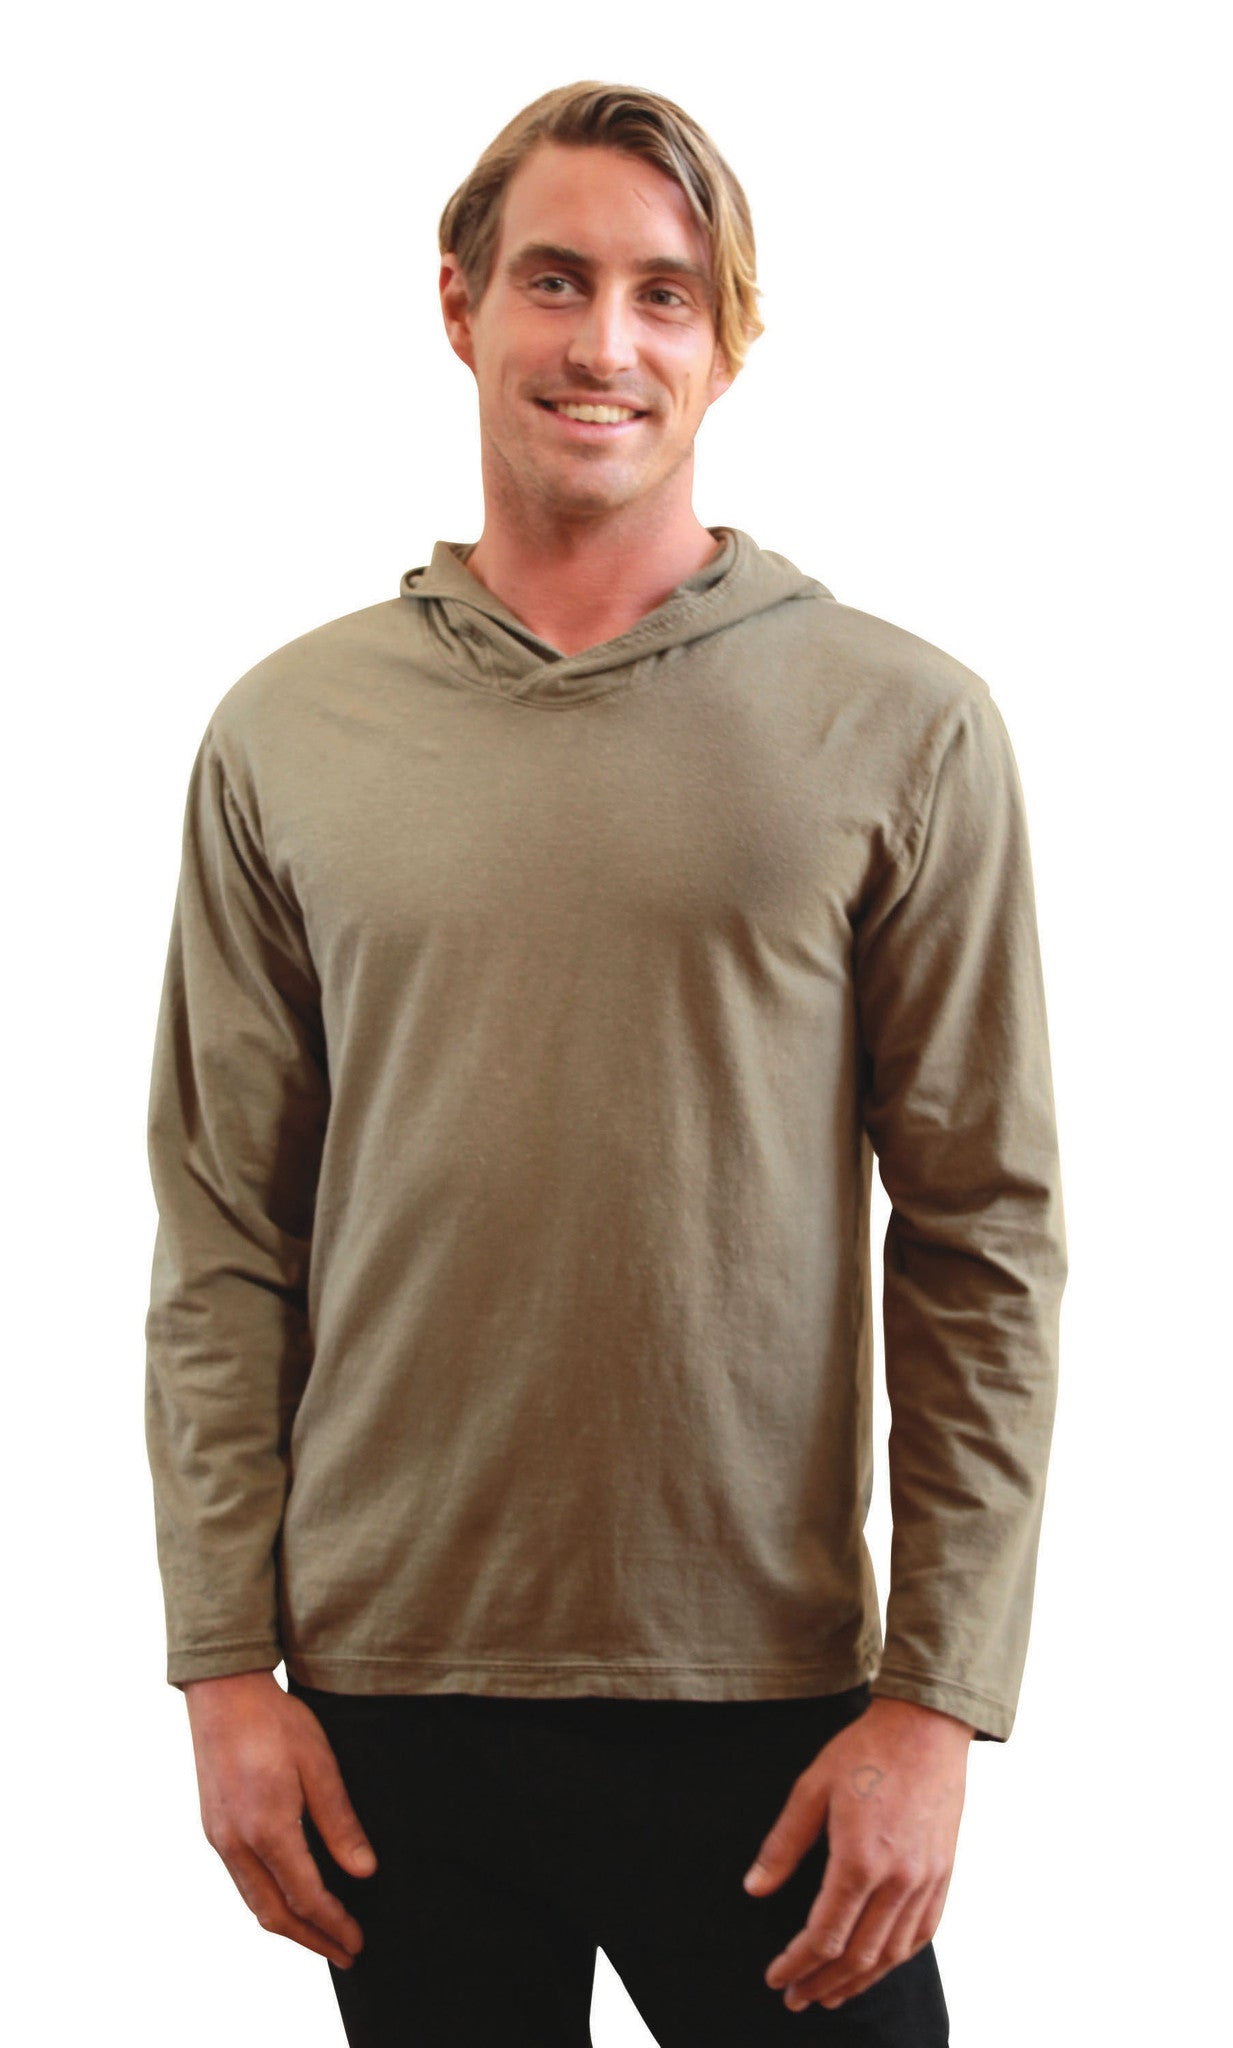 Men's T-Shirt Hoodie Eco Clothing Hemp Organic Cotton